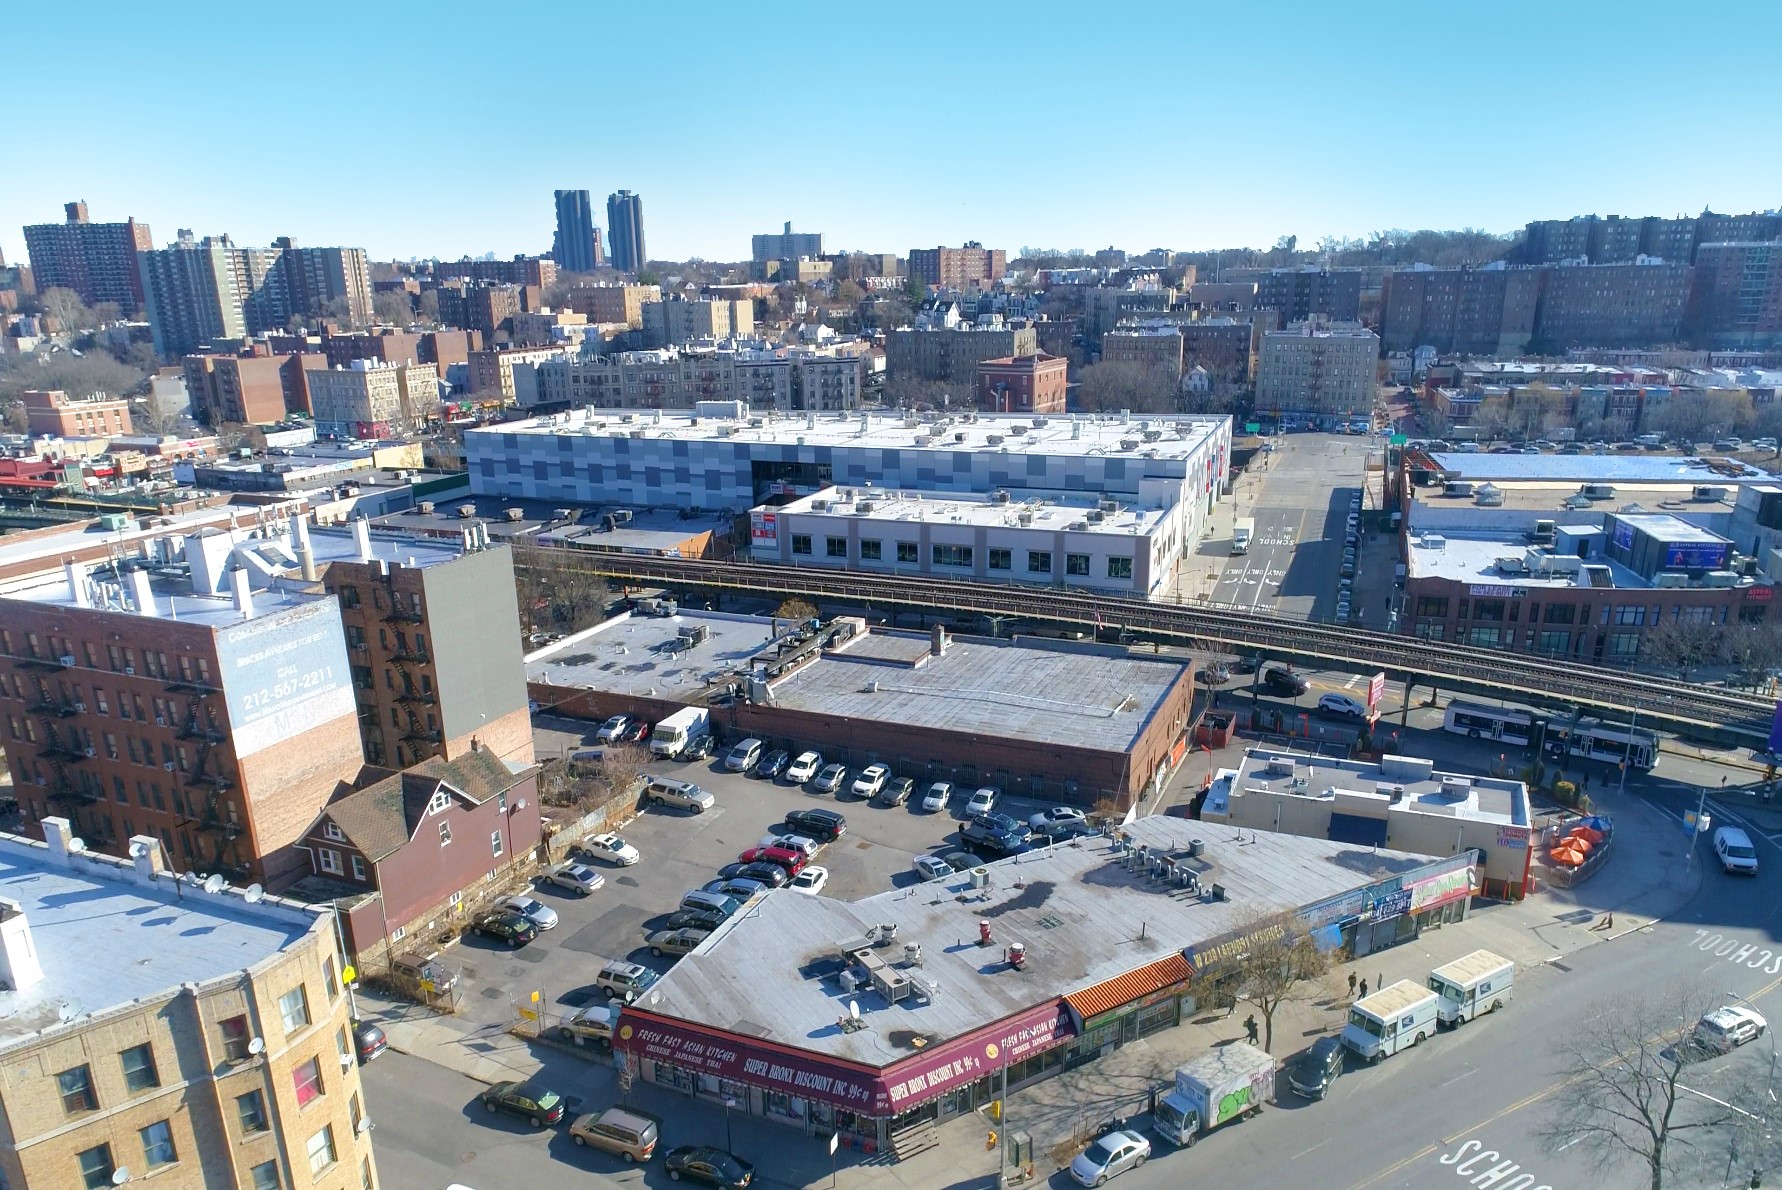 230th and Bway Aerial.jpg